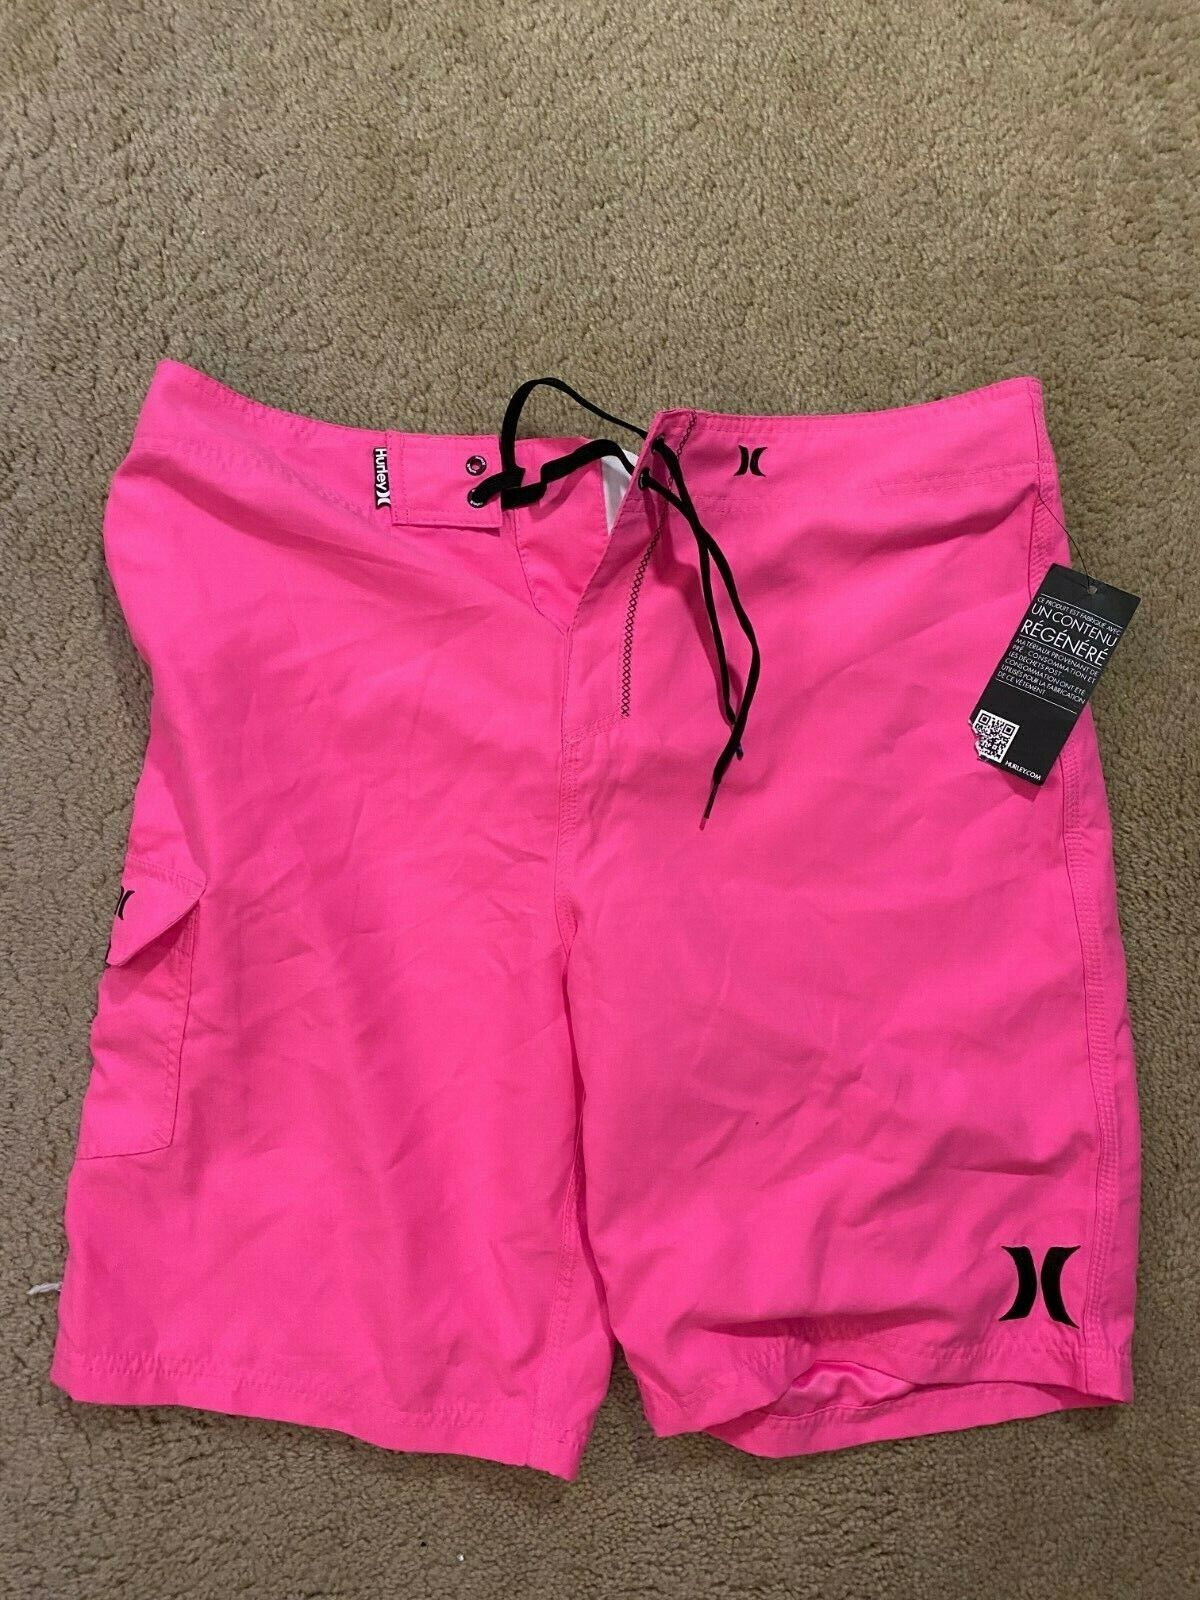 Hurley Board Shorts Pink Swim Suit Men's Size 36 NEW